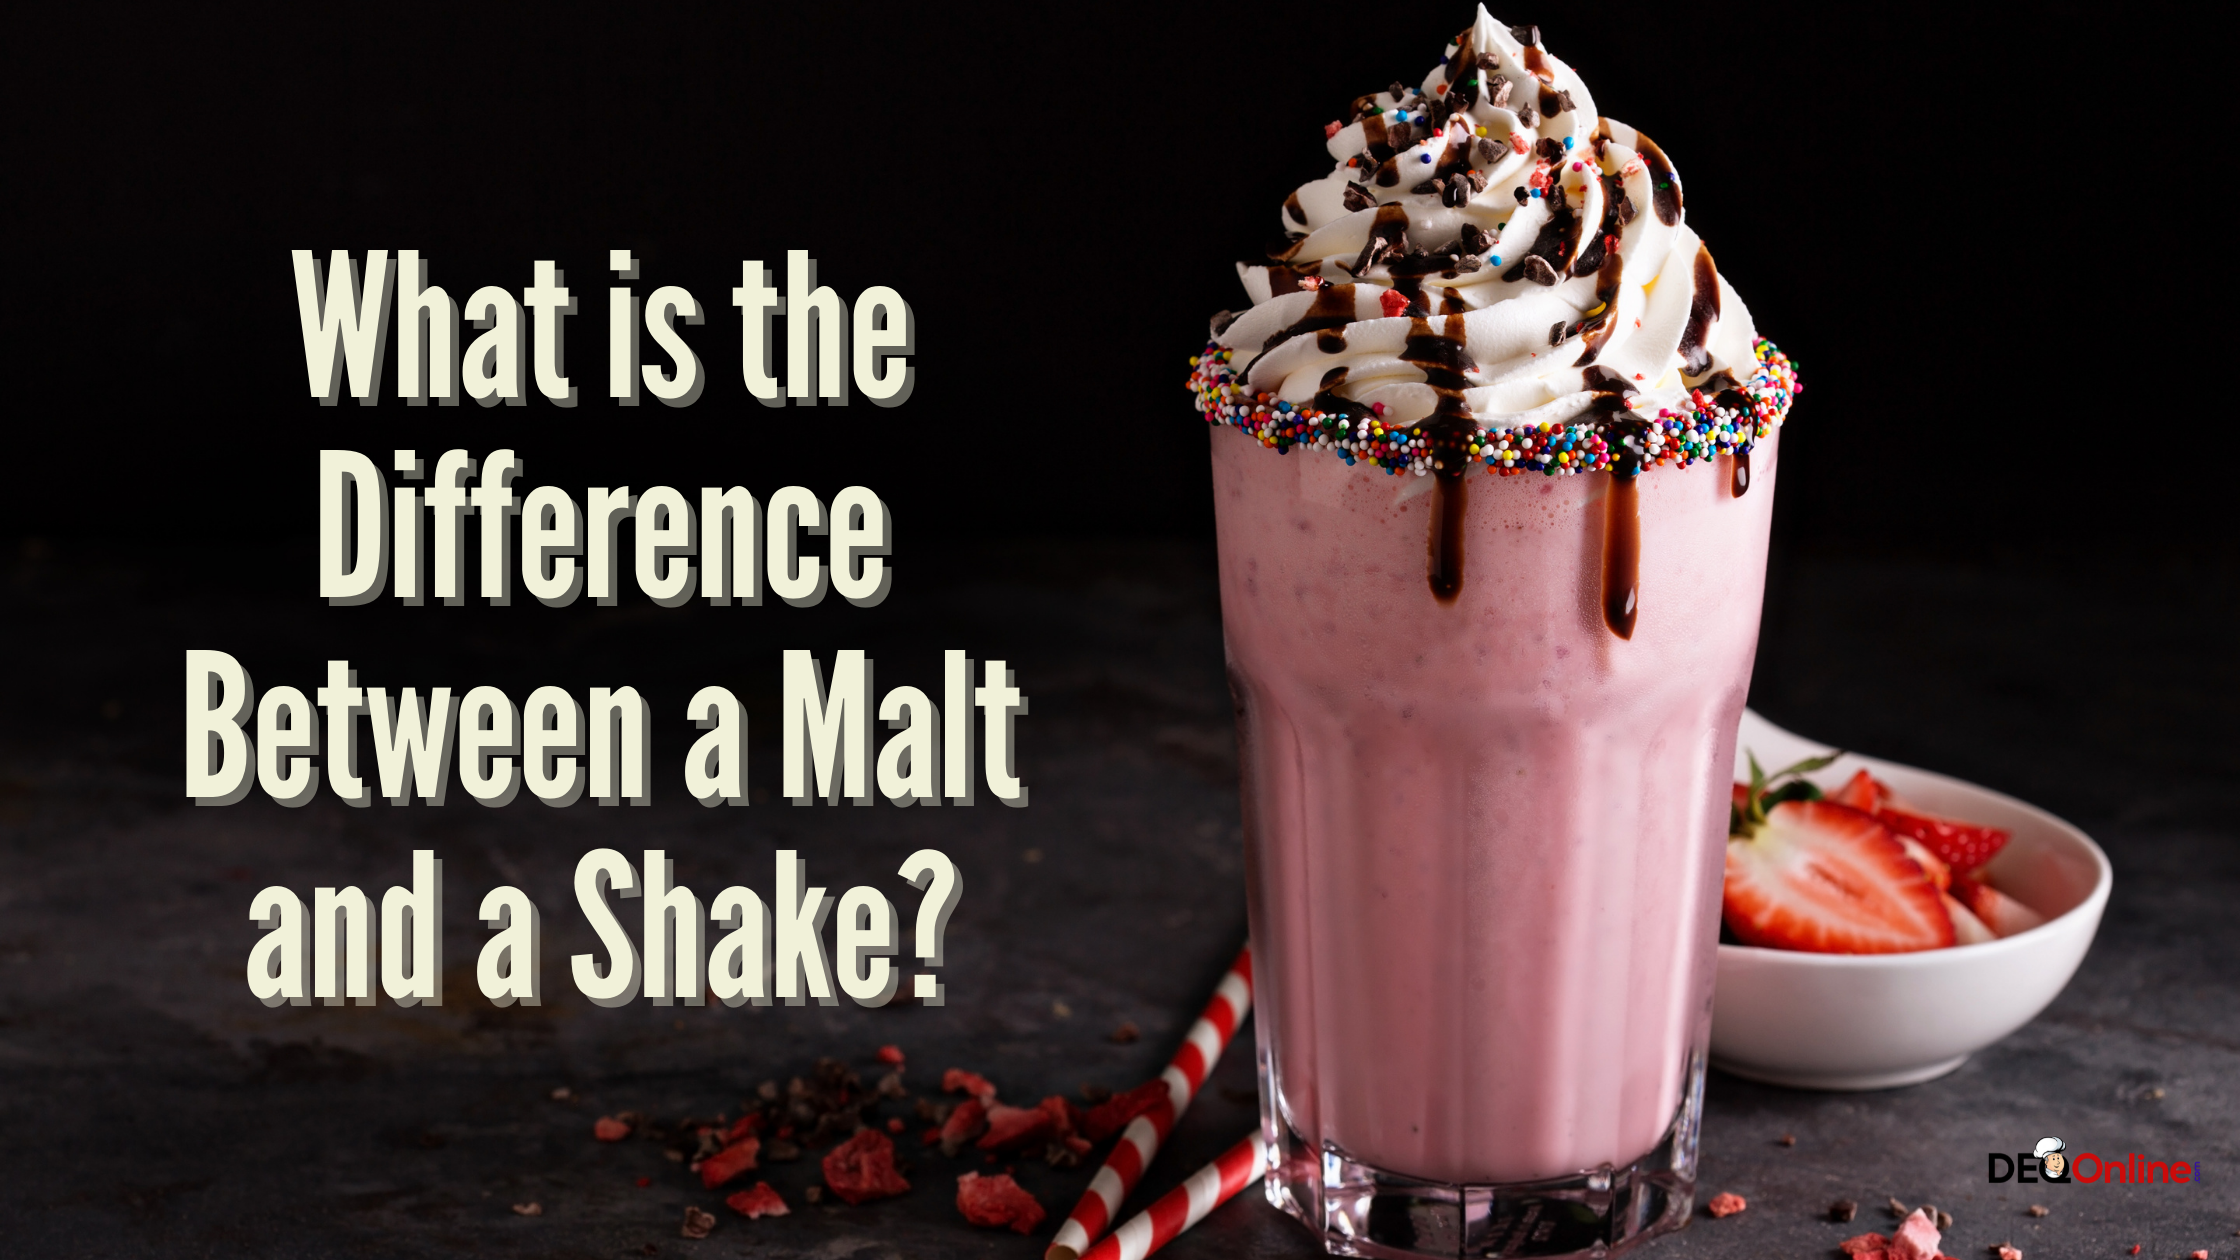 What is the Difference Between a Malt and a Shake?